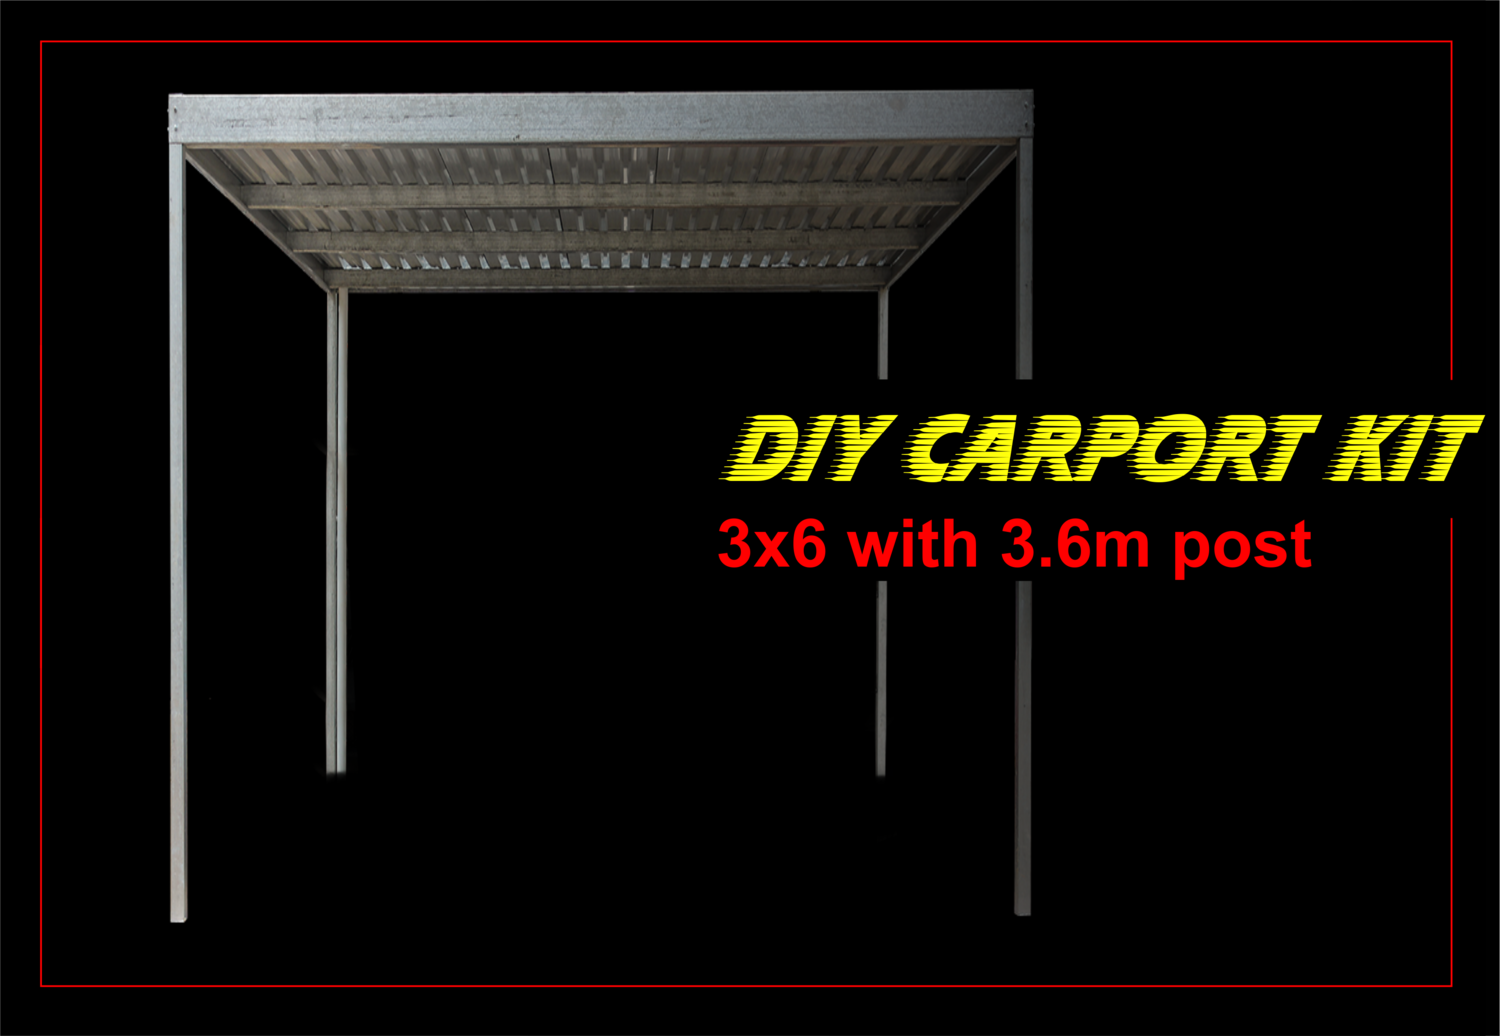 3m x 6m galvanised carport kit with 3.6m post